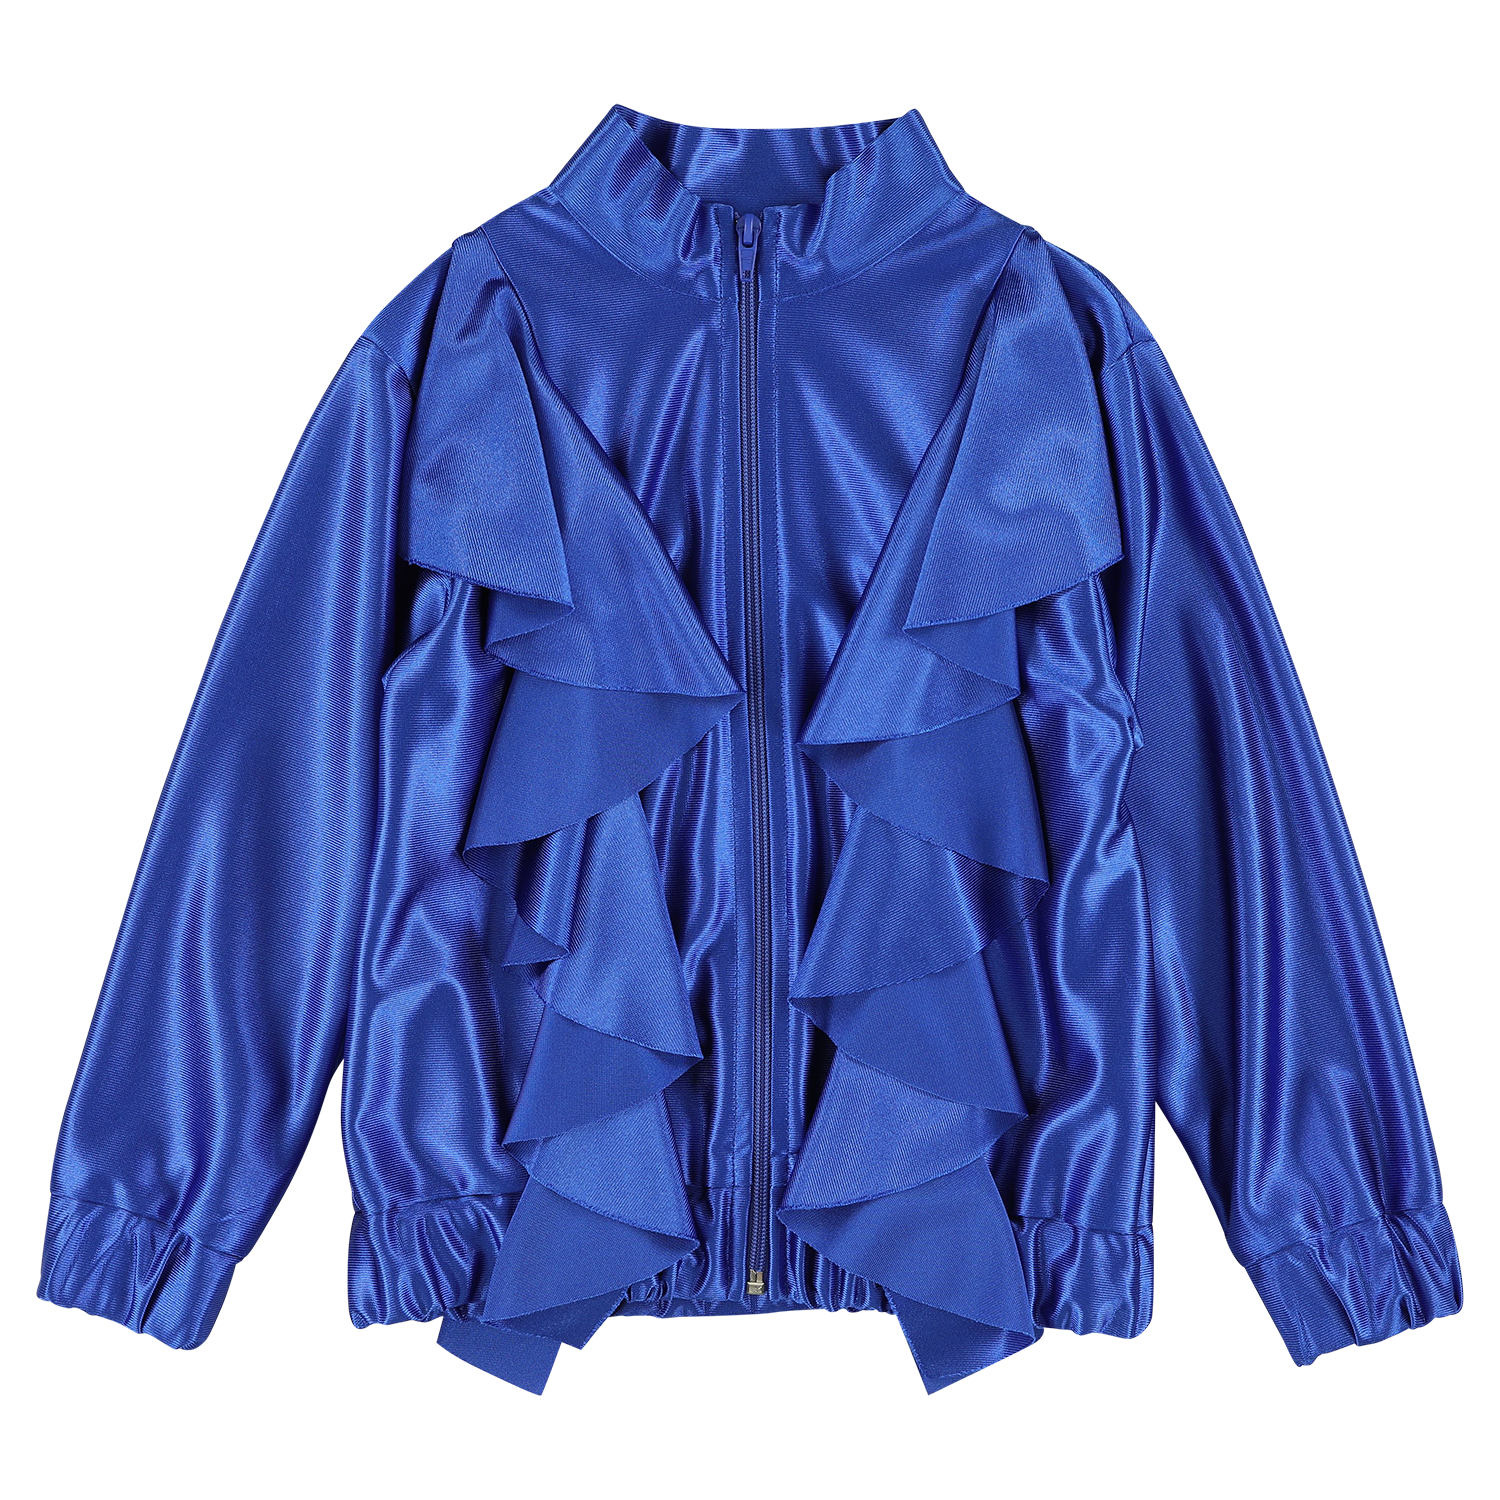 MODEL | 143 STYLE | 29 GLIMMER GALAXY BLUE extra shiny ruffled track top